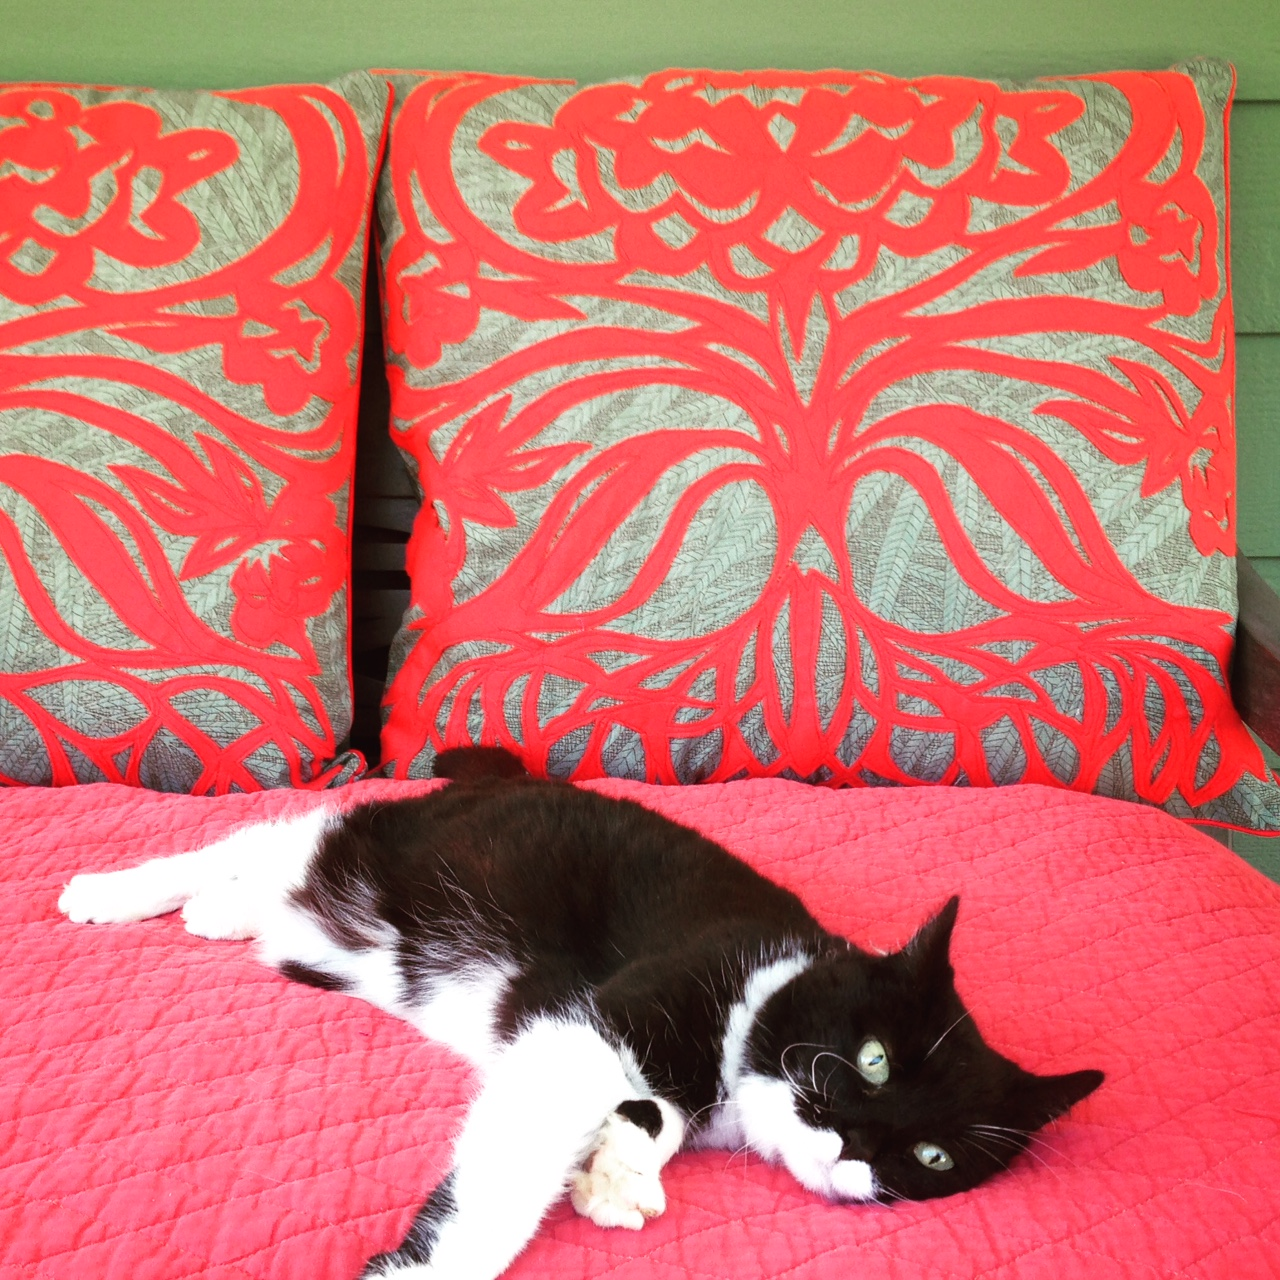 Thistle applique daybed pillows.